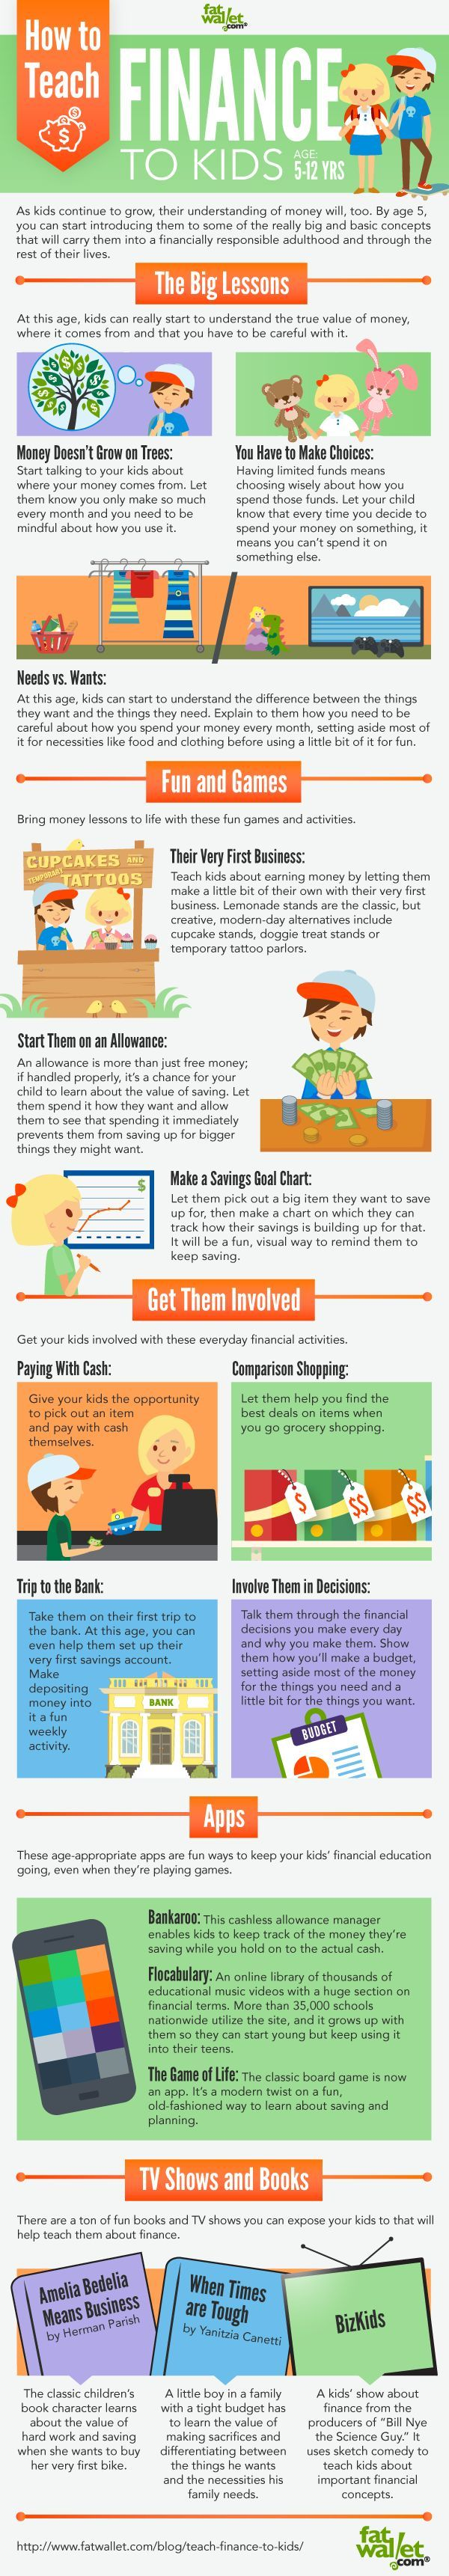 Teaching children about #money is a very important part of parenting. Here are some great lessons to teach them and tools to use.